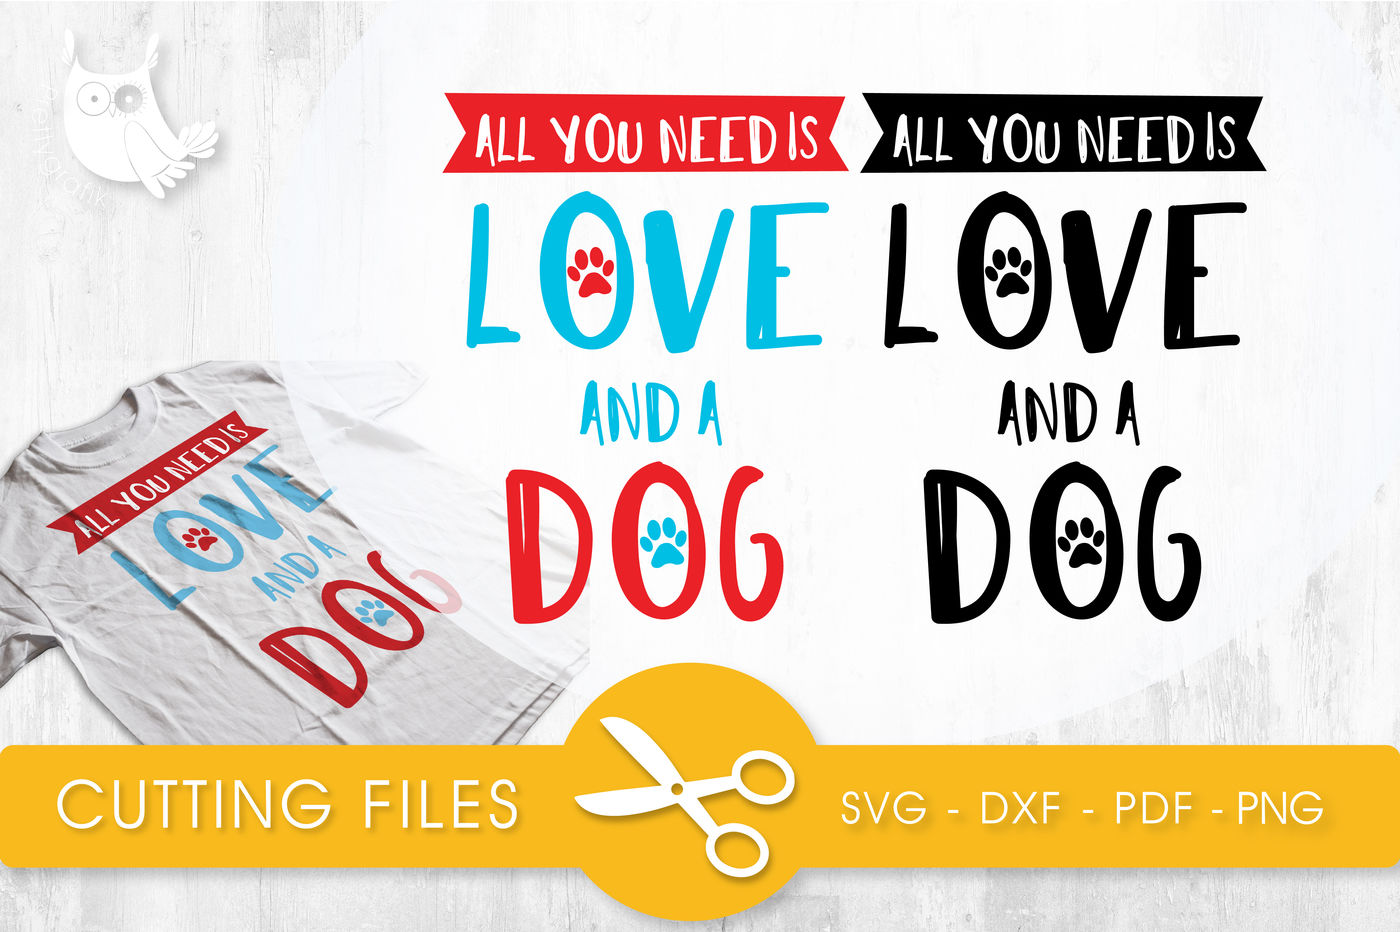 All You Need Is Love And A Dog Svg Png Eps Dxf Cut File By Prettycuttables Thehungryjpeg Com